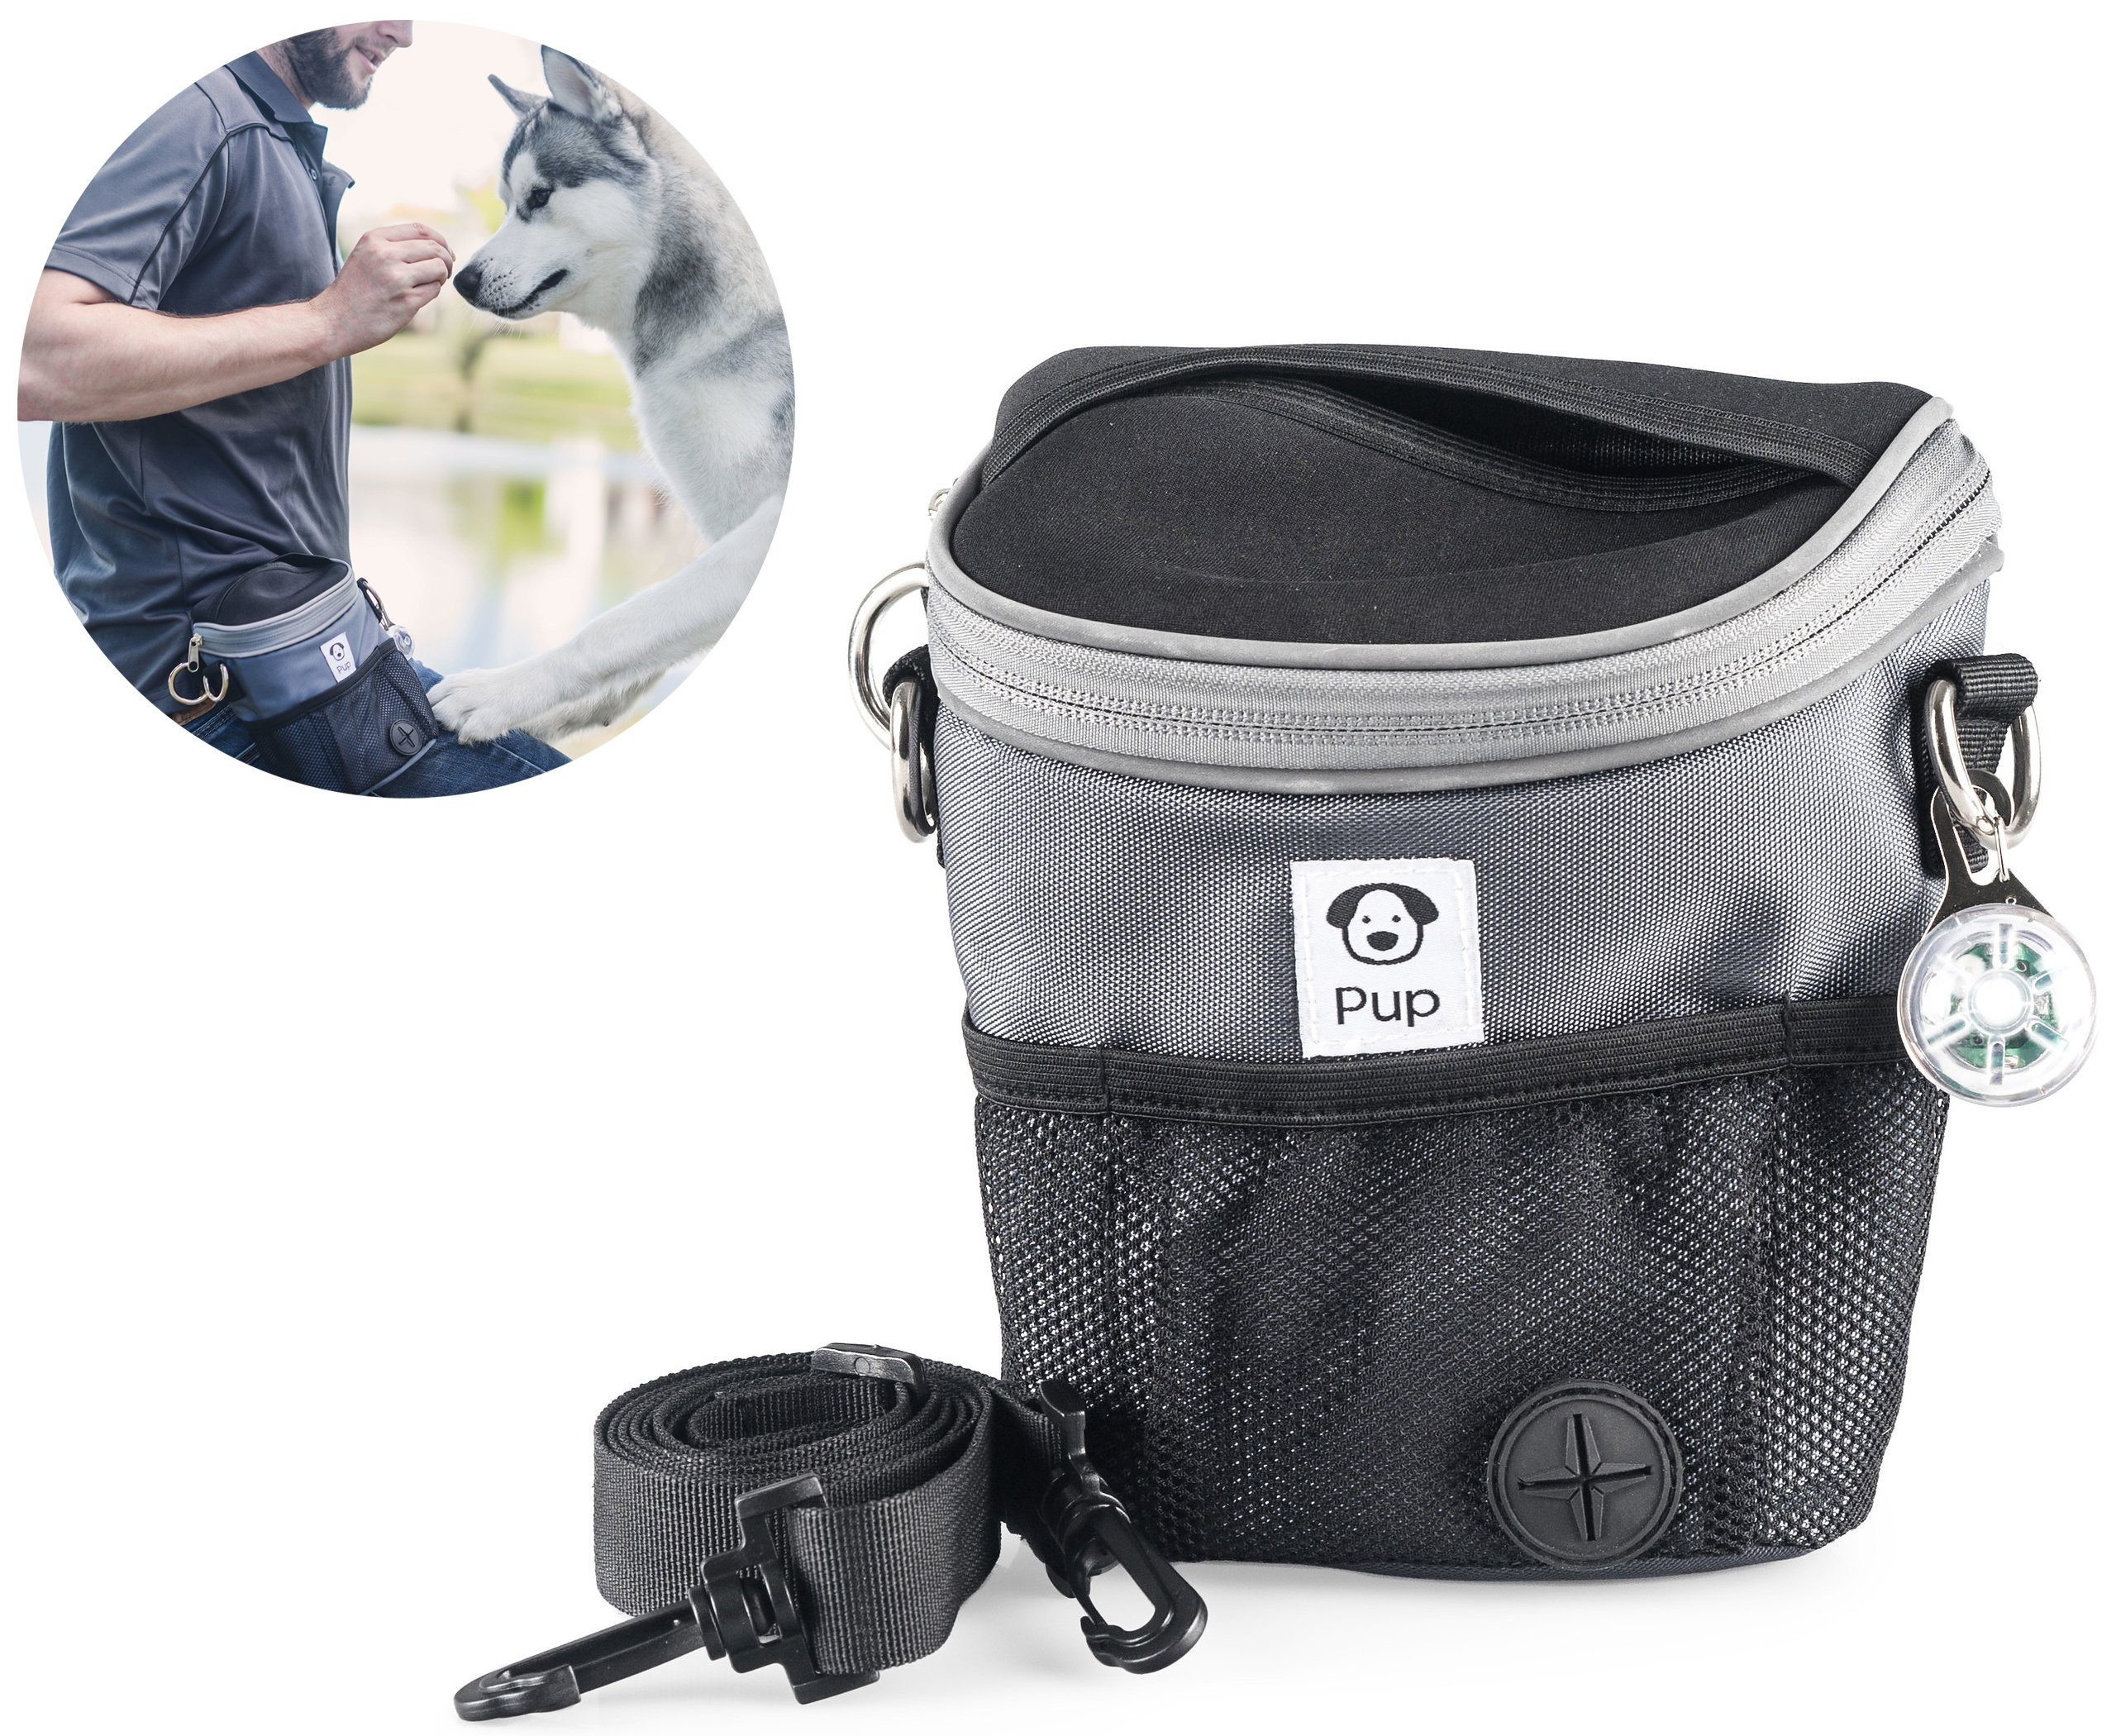 22294e0bf8 Get Quotations · Large Reflective Dog Walking Training Treat Bag w  Clicker  Trainer and Safety Collar Light for